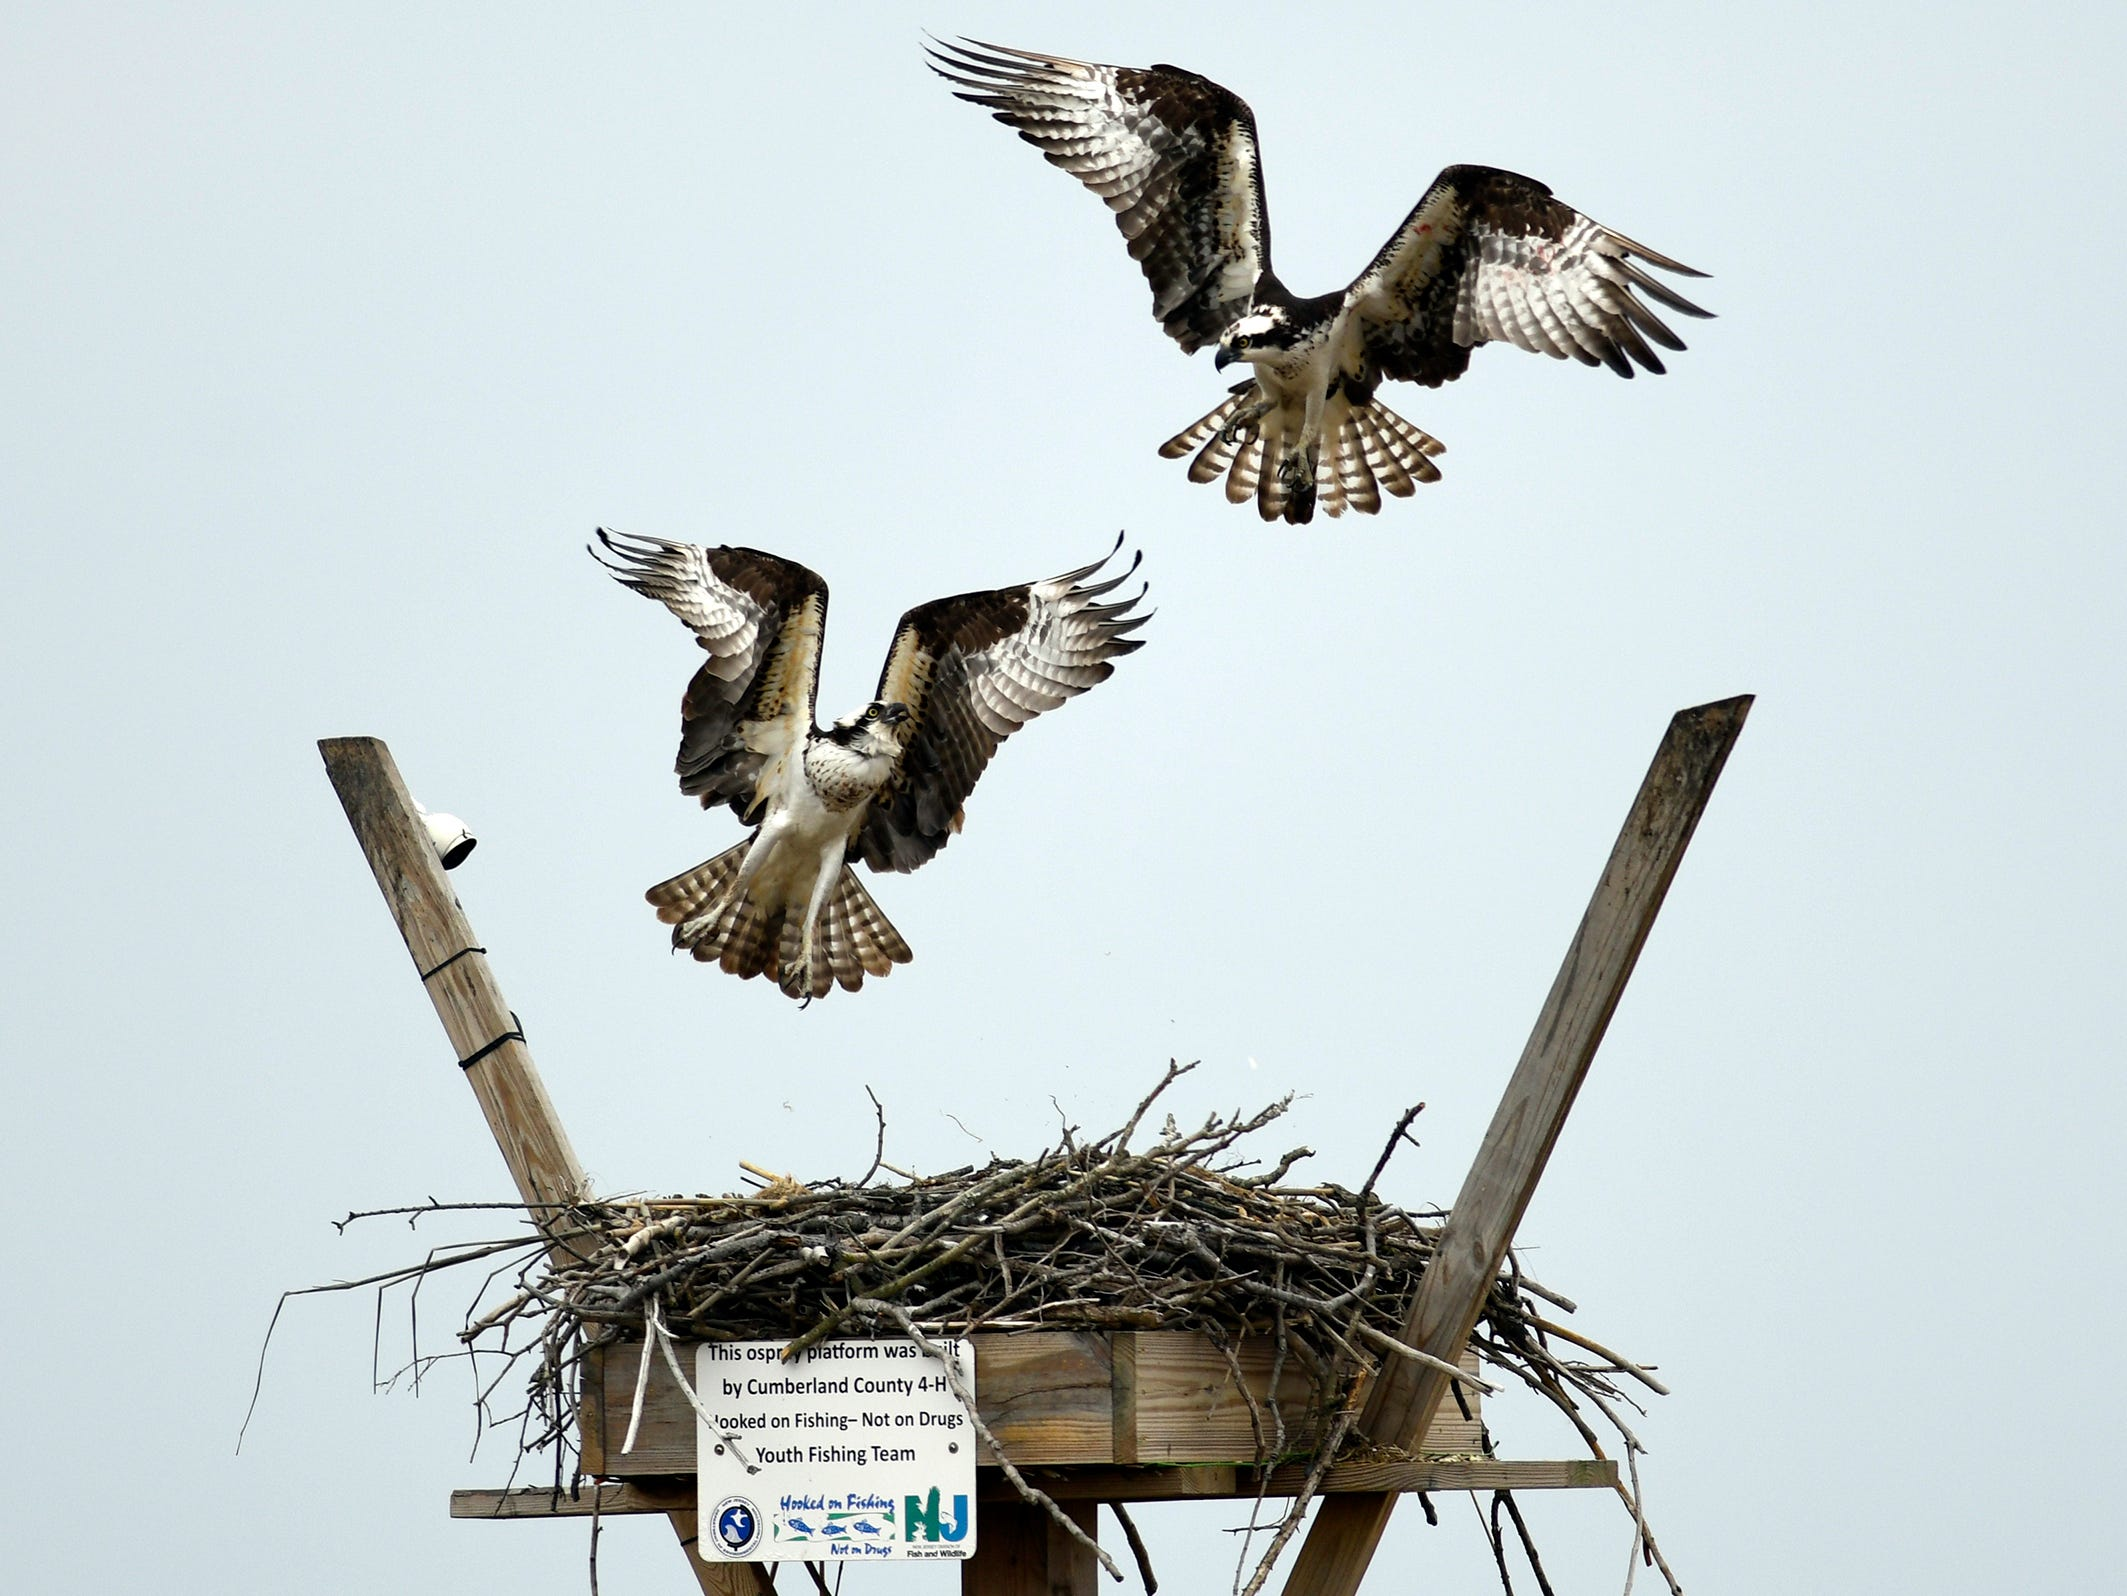 A nesting pair of osprey at the East Point Lighthouse in Heislerville.